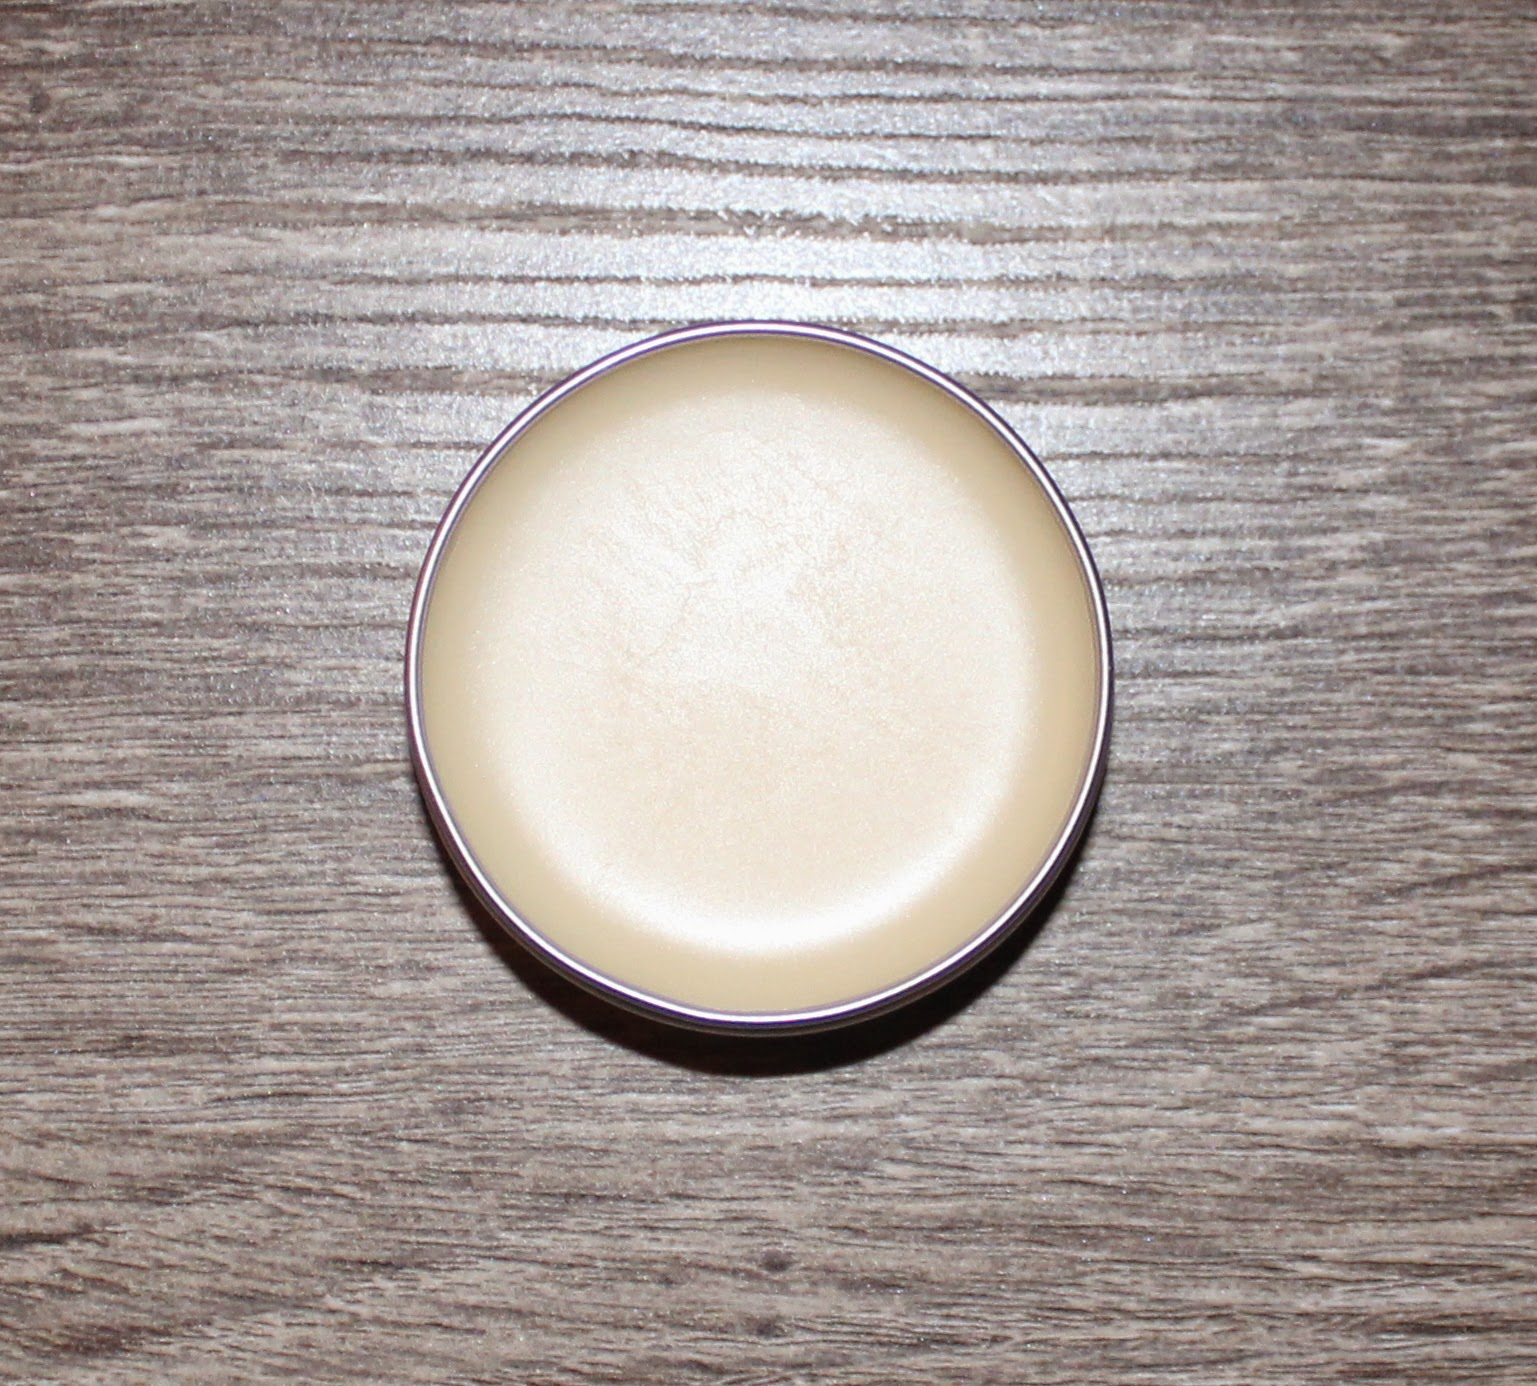 The Body Shop Vanilla Brulee Lip Balm